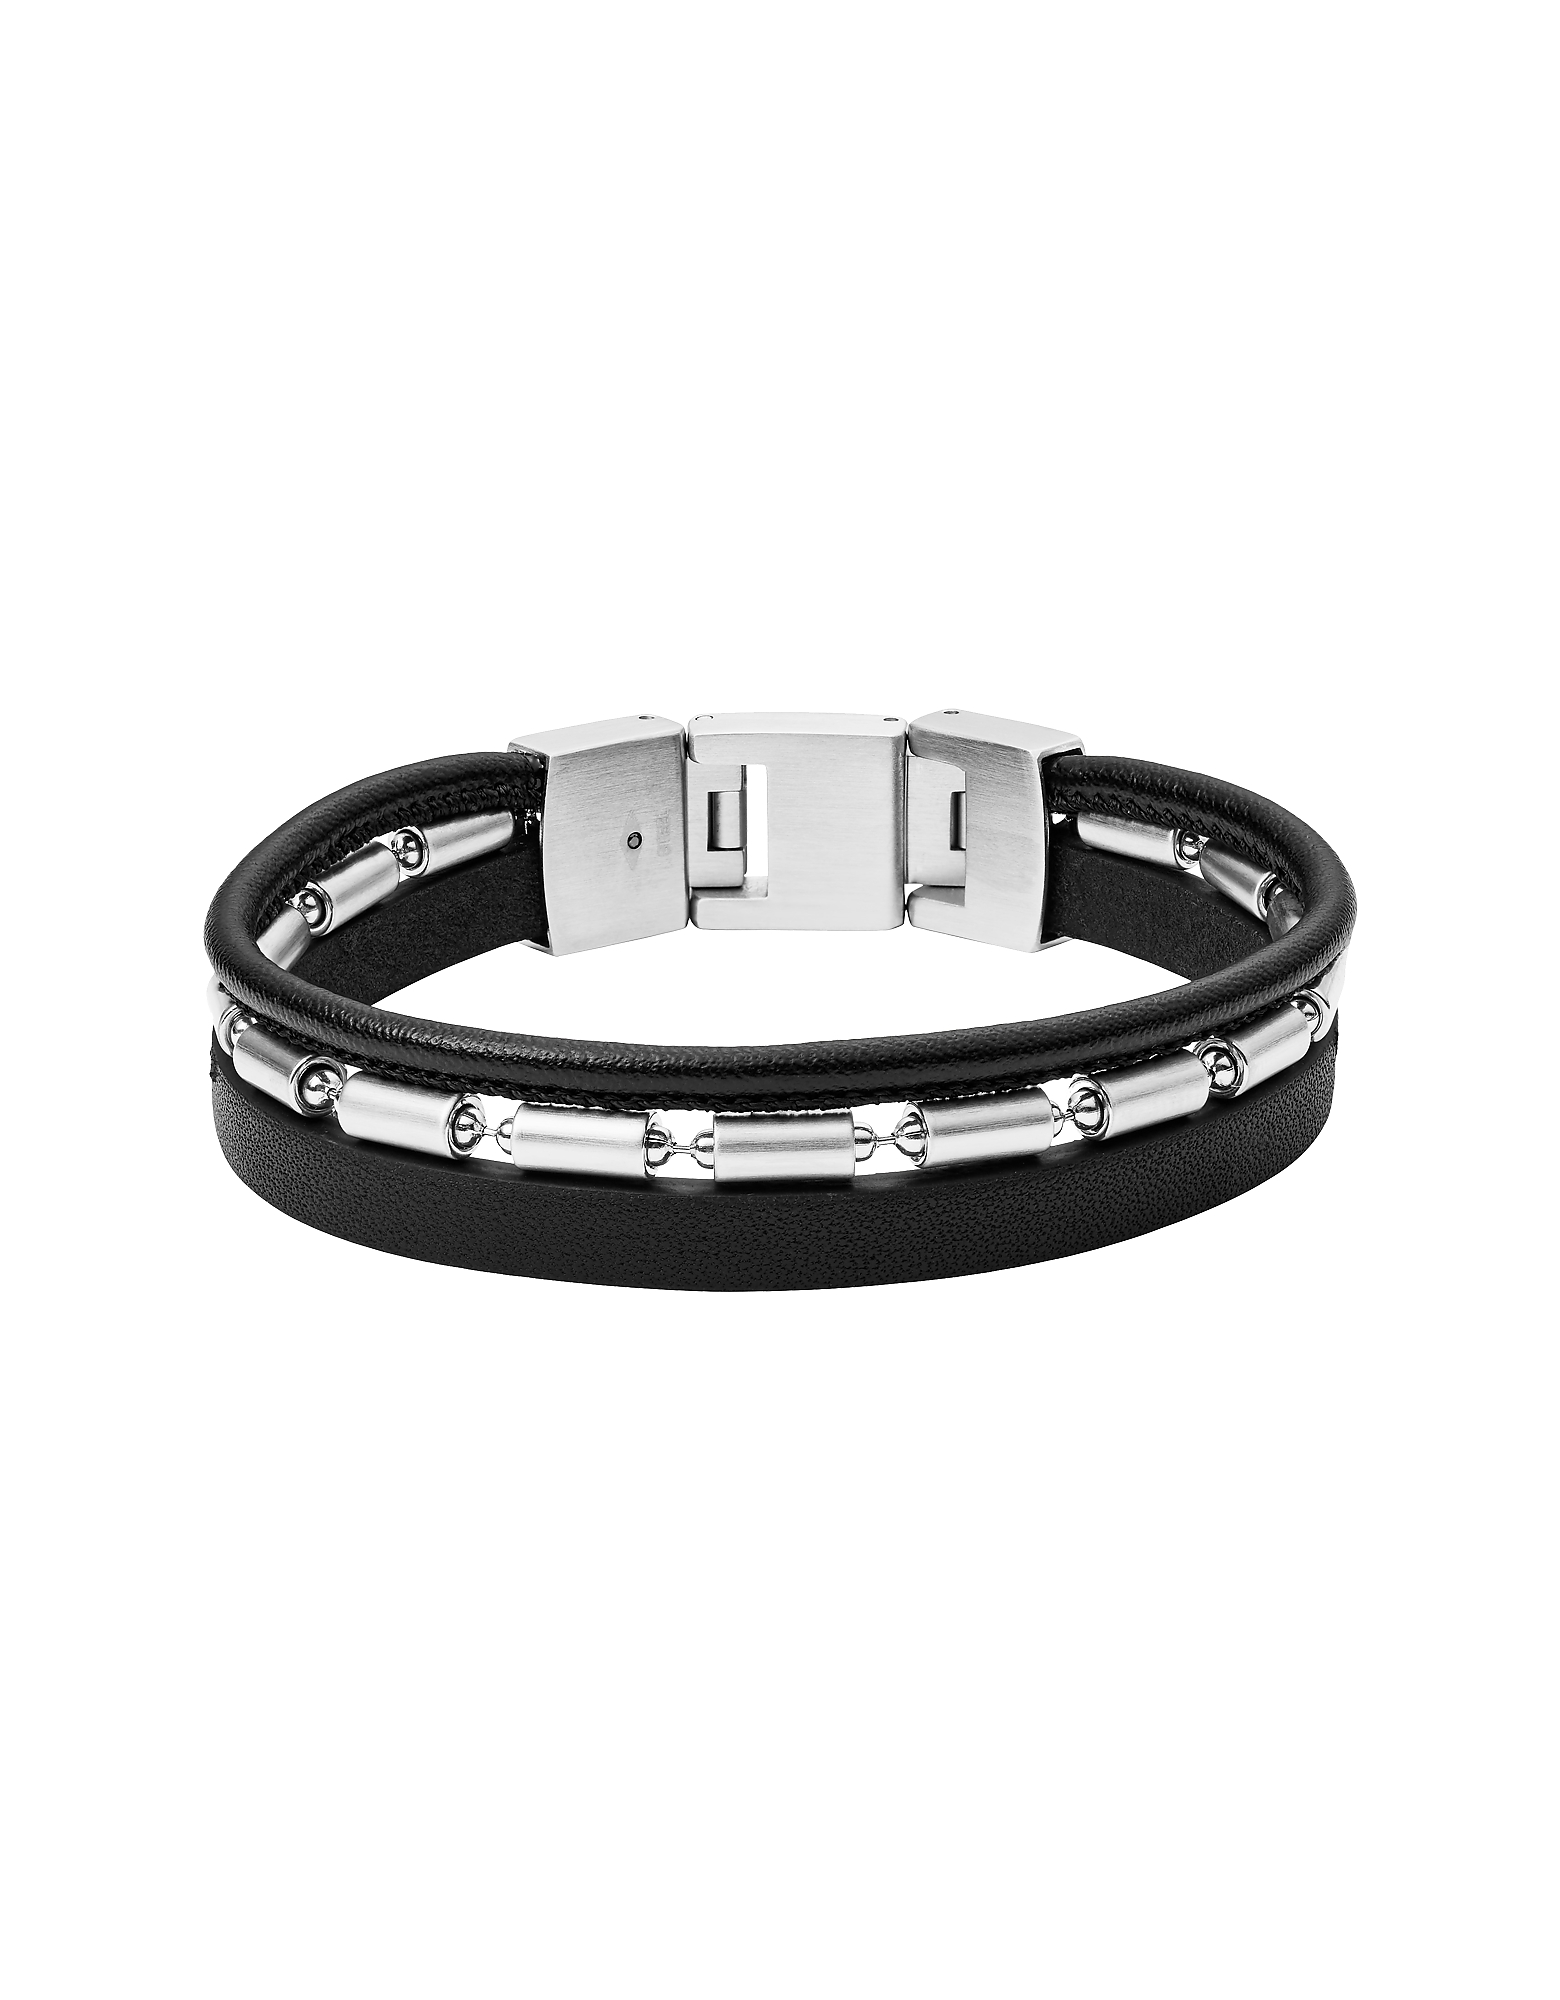 Fossil Designer Men's Bracelets, Triple Leather Bike Bracelet